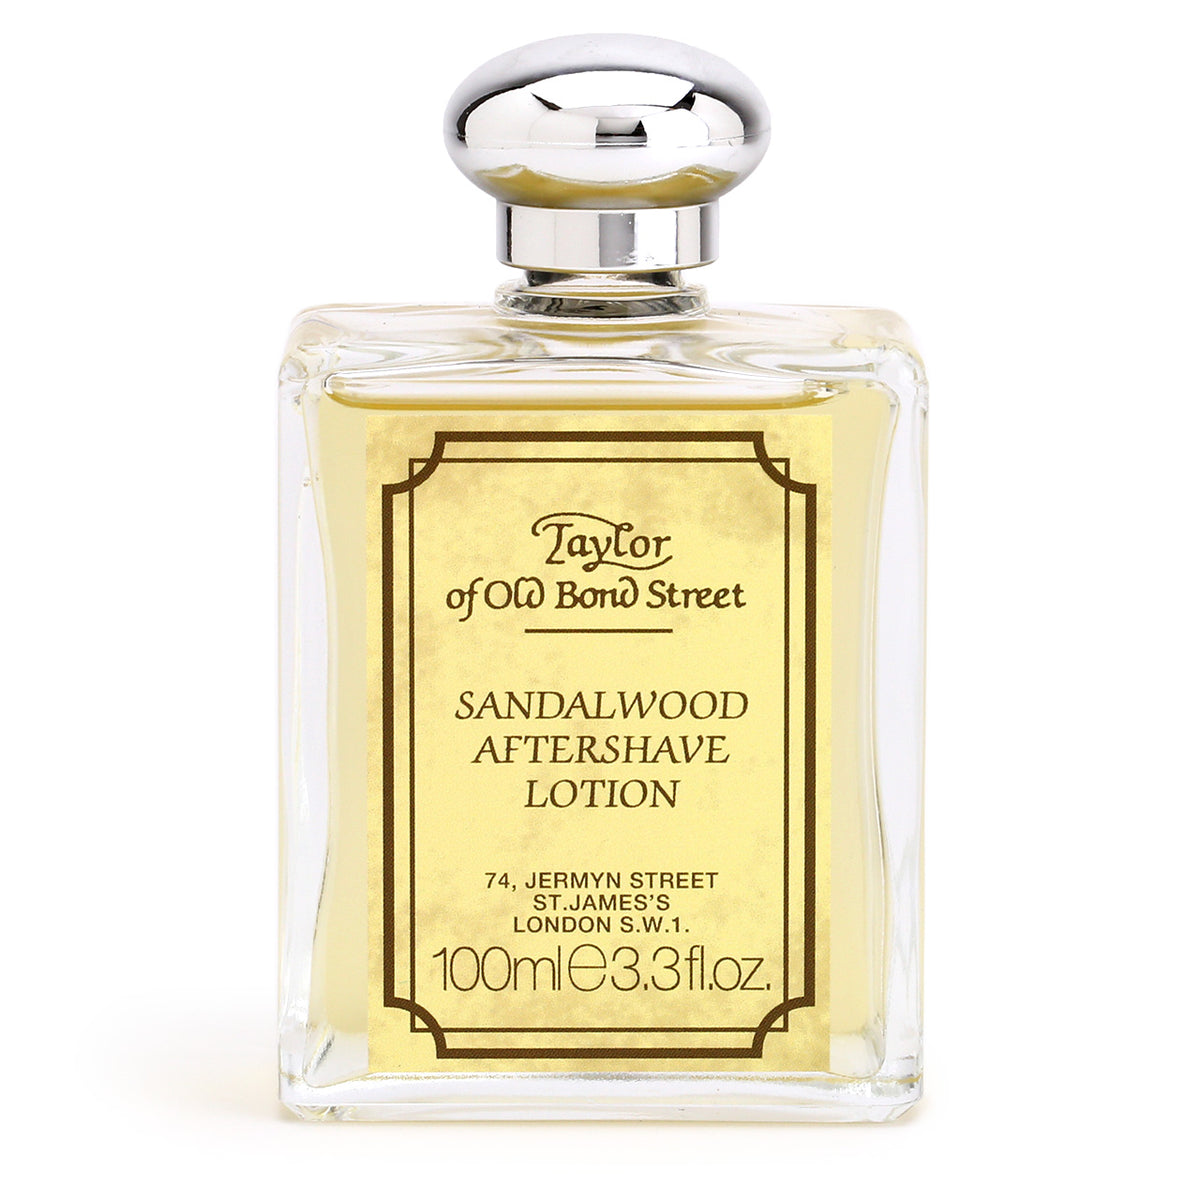 Taylor of Old Bond Street Aftershave Lotion 100ml - Sandalwood